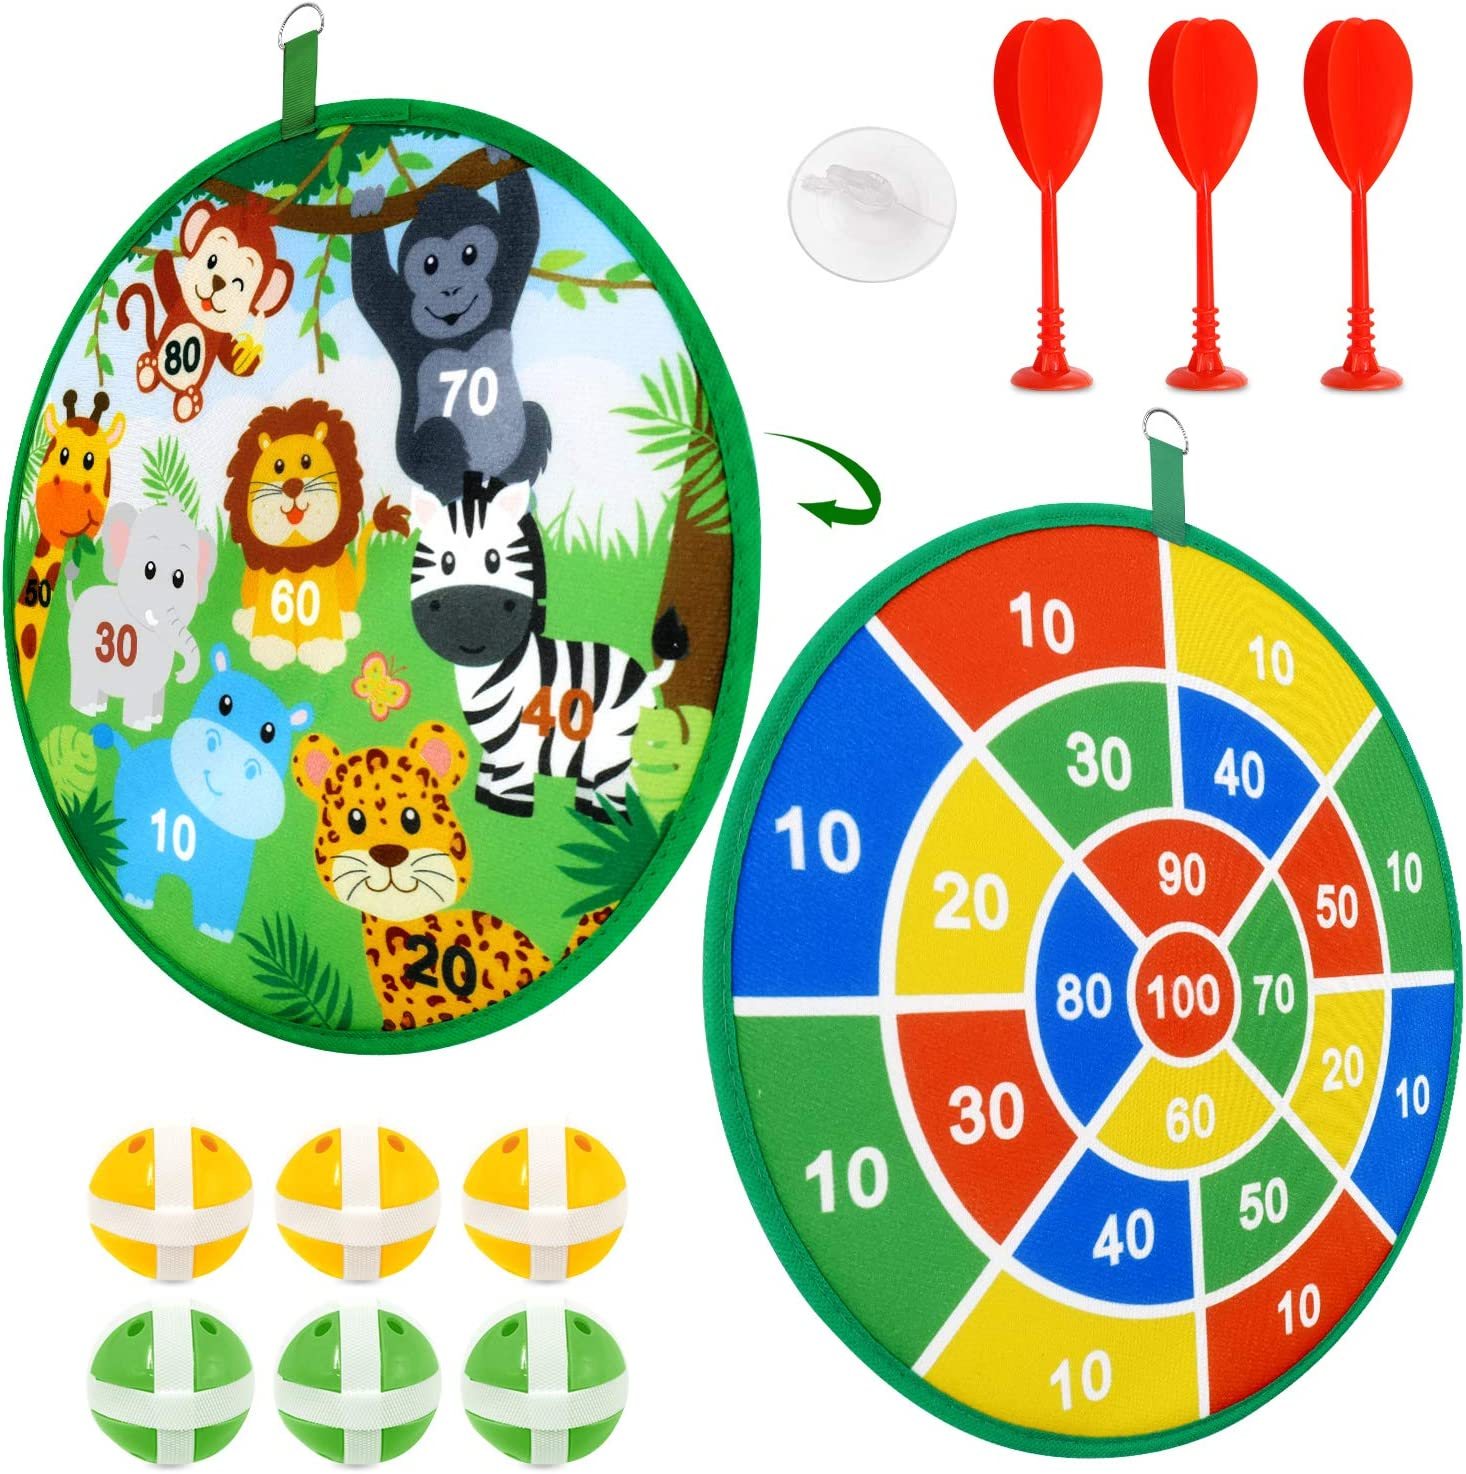 Kids Game Dart Board Set with 6 Sticky Balls and 3 Magnetic Throwing Darts Safe Classic Indoor Outdoor Dartboard Games for Halloween Christmas Party Interactive Games Gift for Kids Adults Family